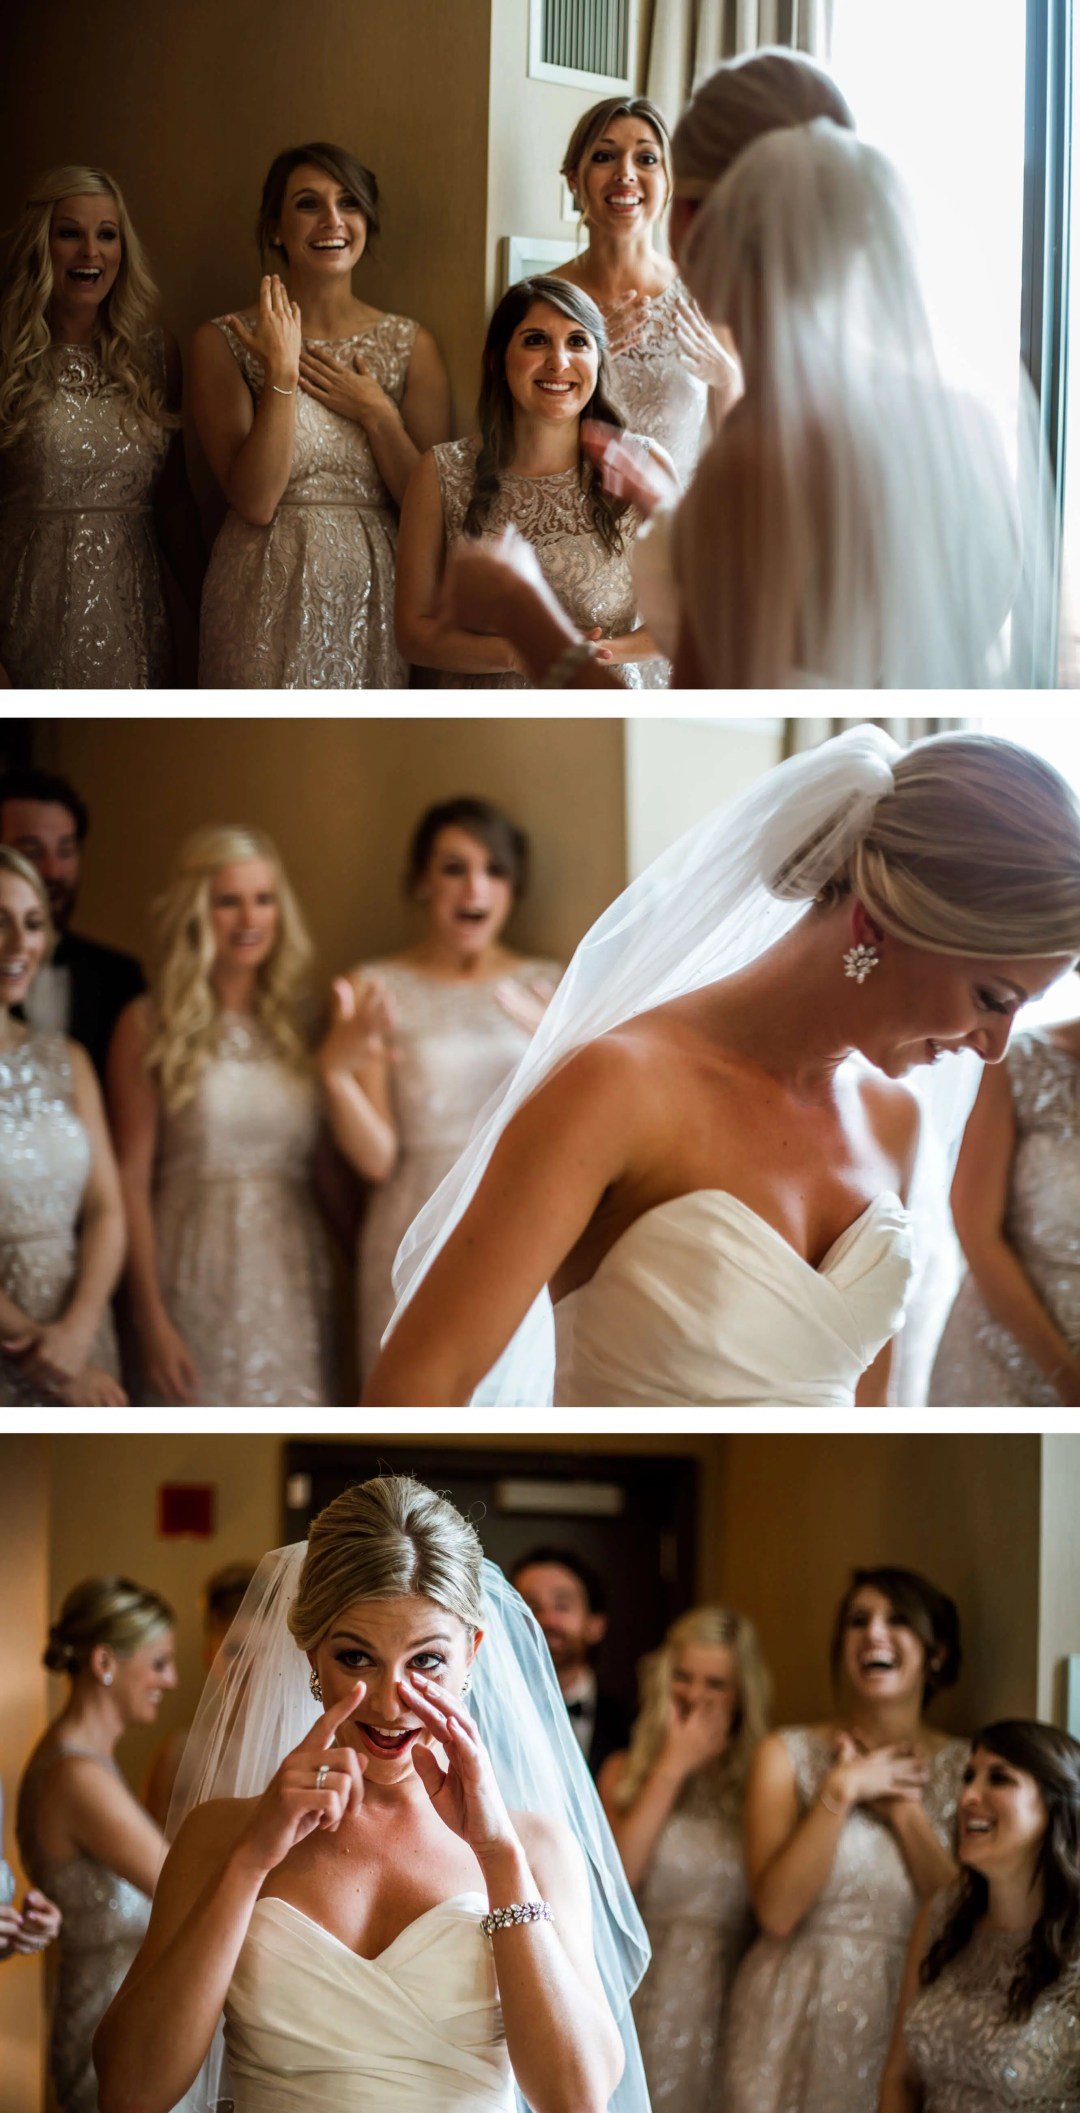 Bride first look with bridal party at Palomar Hotel - Wedding Photographer Sussex